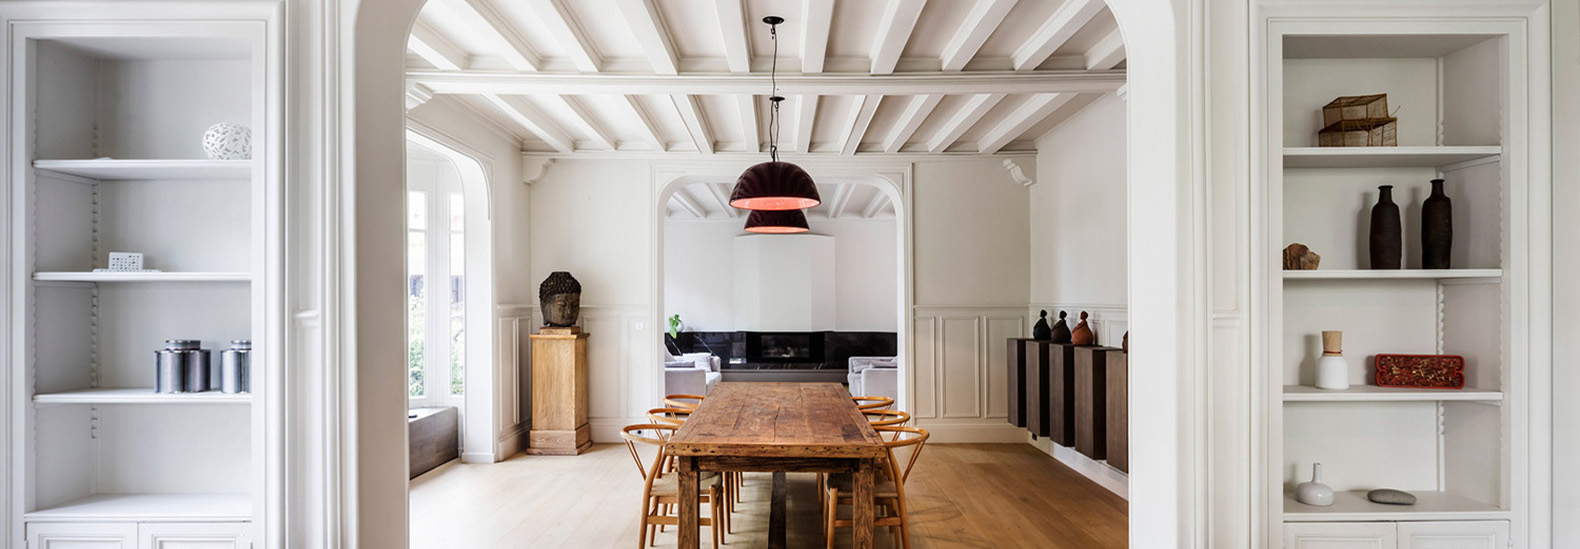 Renovation Maison 1930 Renovated 19th Century Mansion Near Paris Becomes A Modern